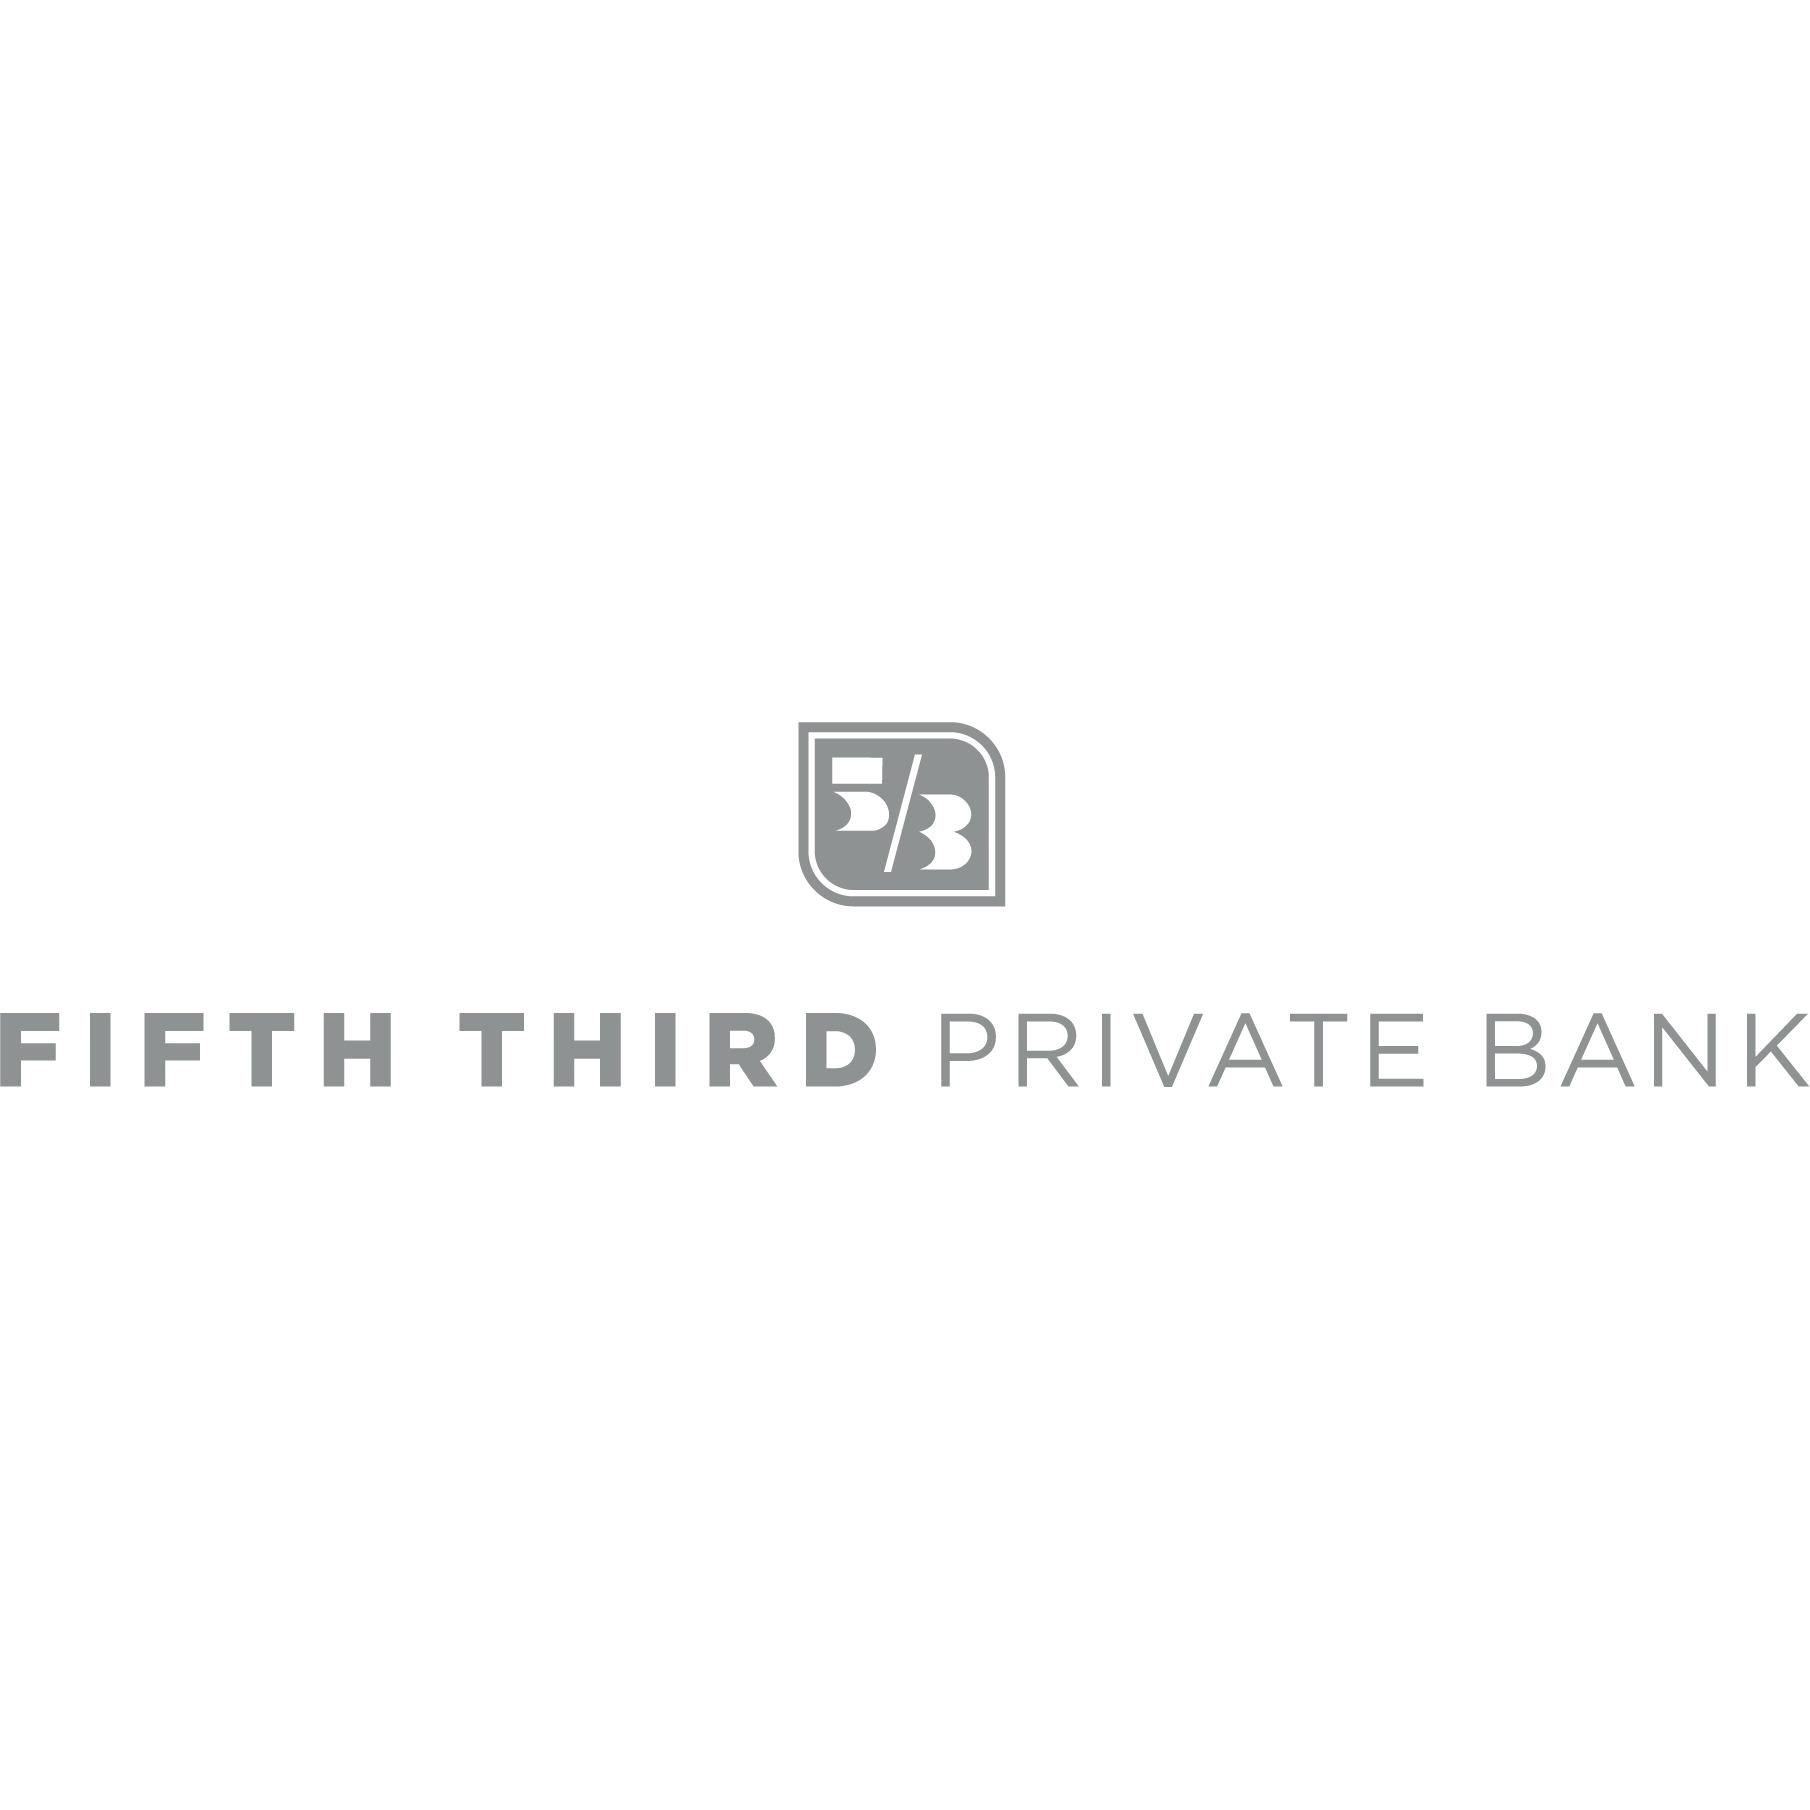 Fifth Third Private Bank - Nancy Martin | Financial Advisor in Indianapolis,Indiana